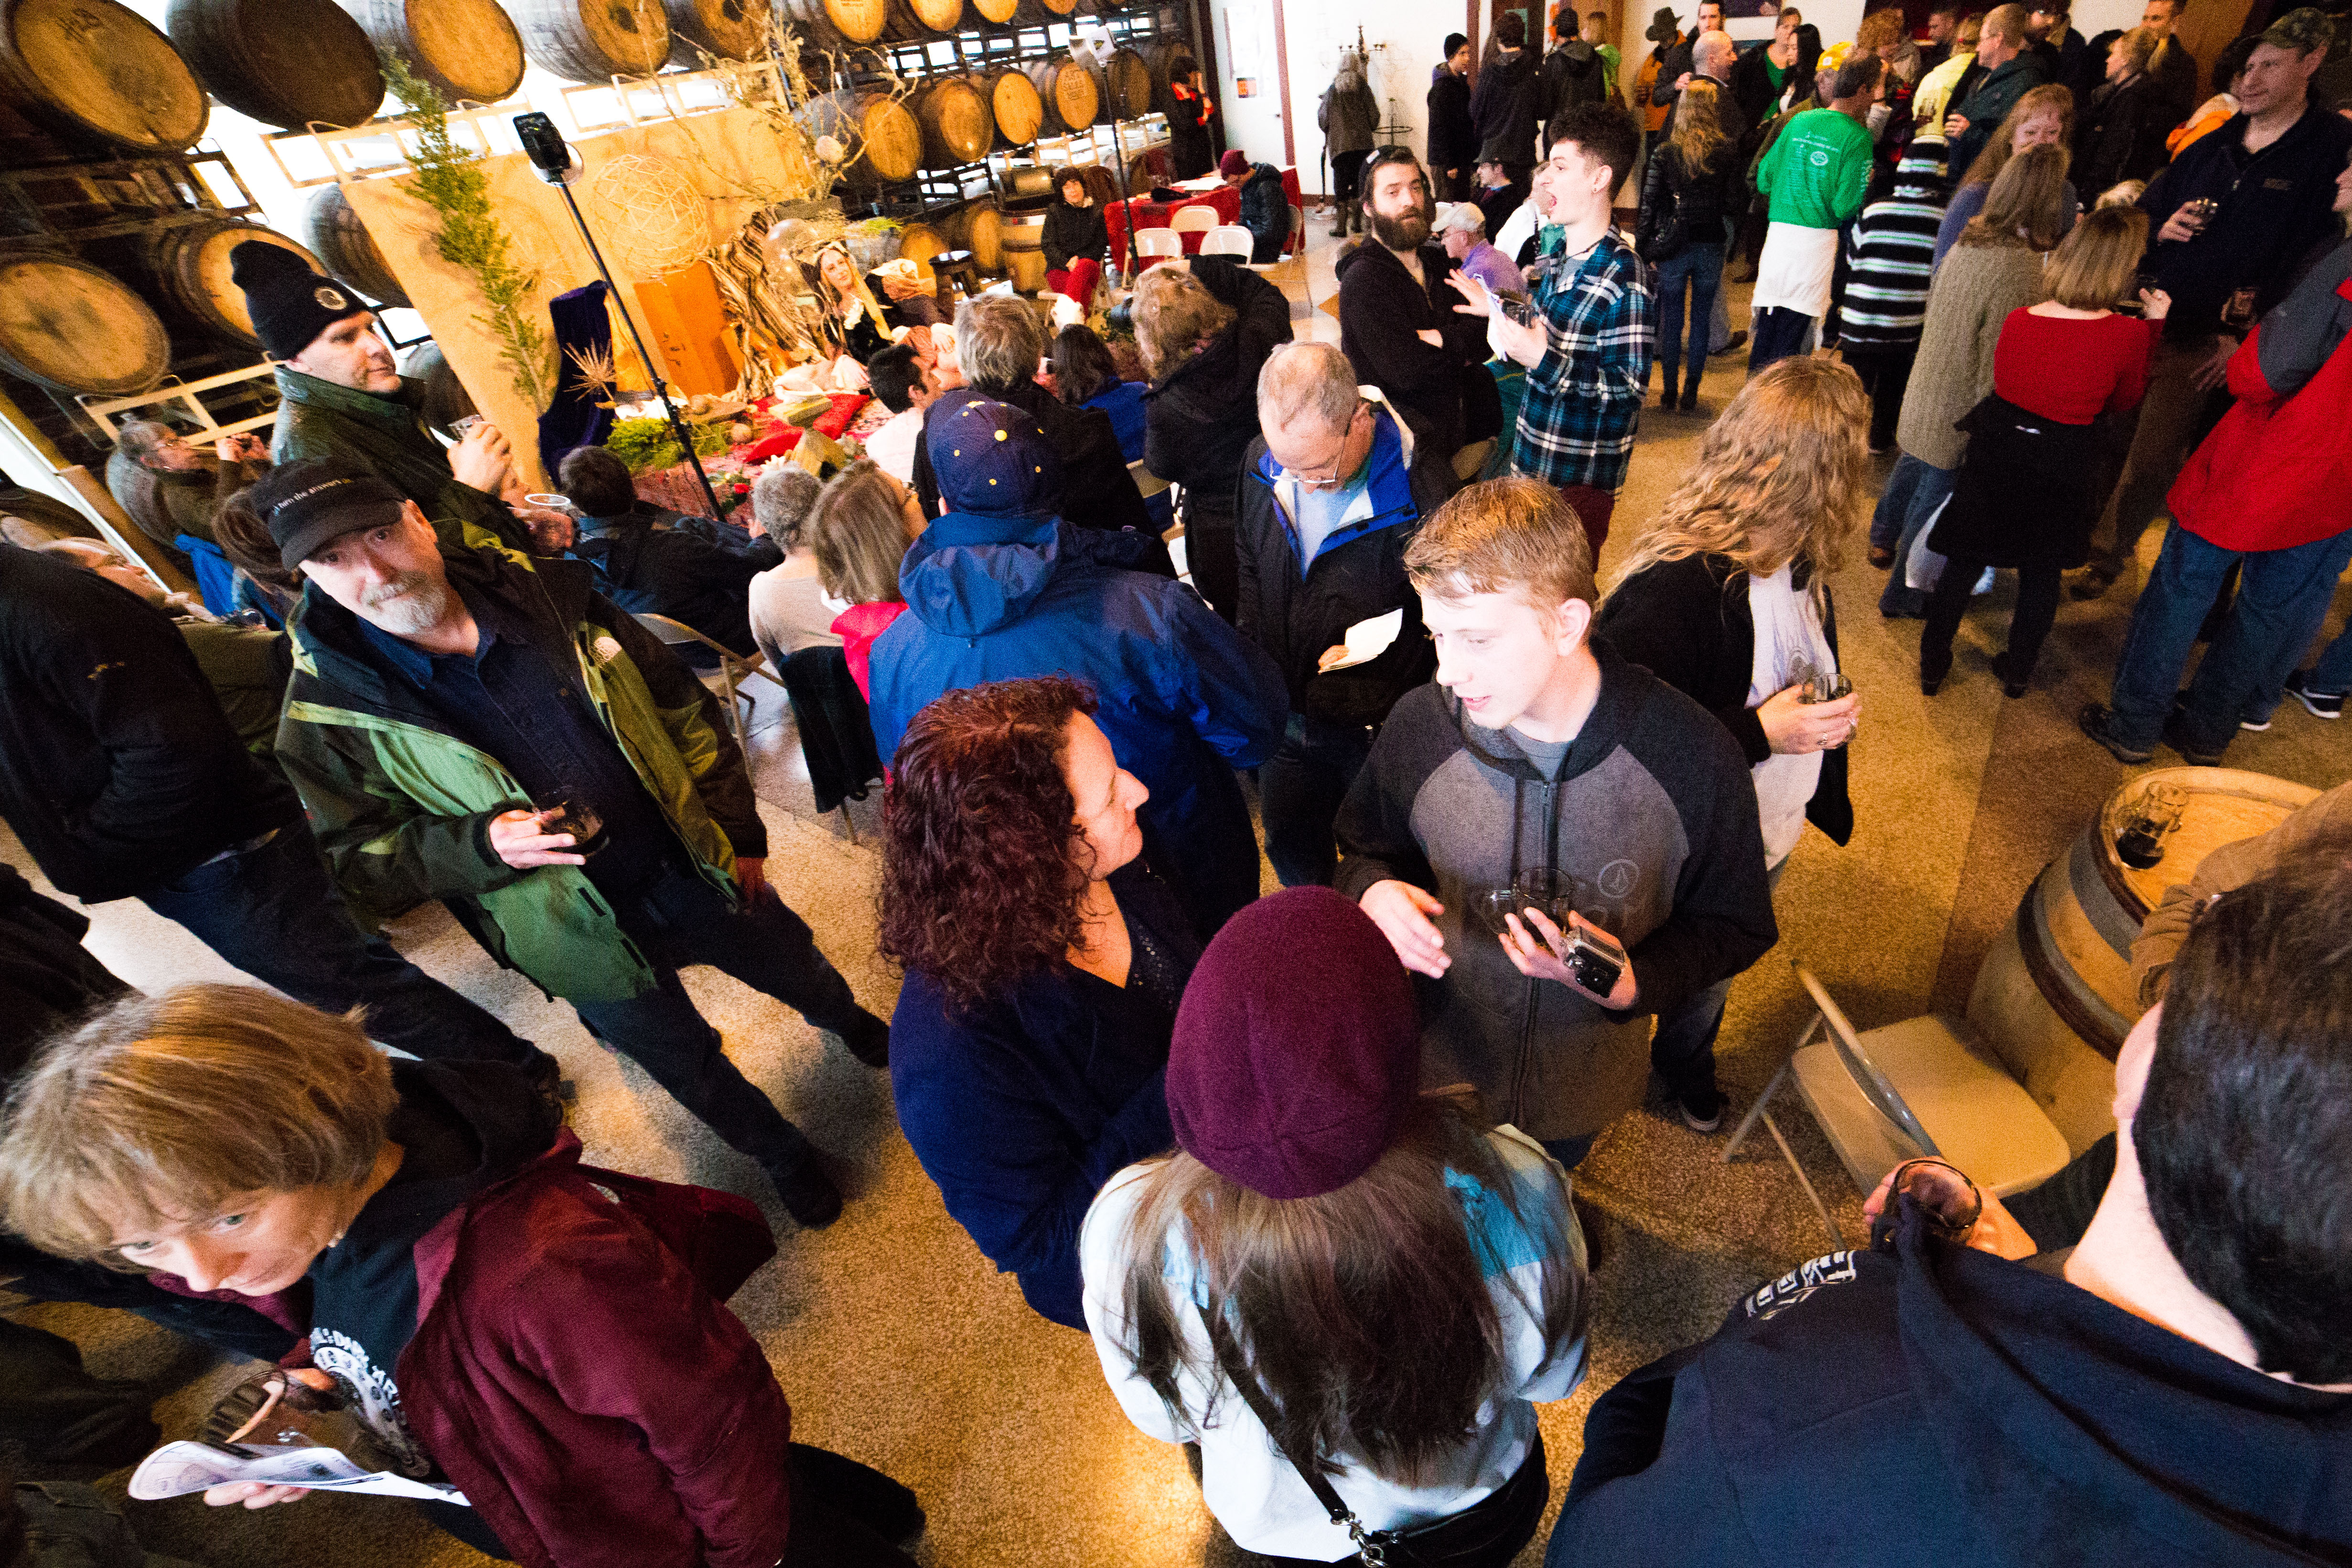 Attendees at Fort George Brewery Festival of Dark Arts held each February in Astoria, Oregon. (image courtesy of Fort George Brewery)